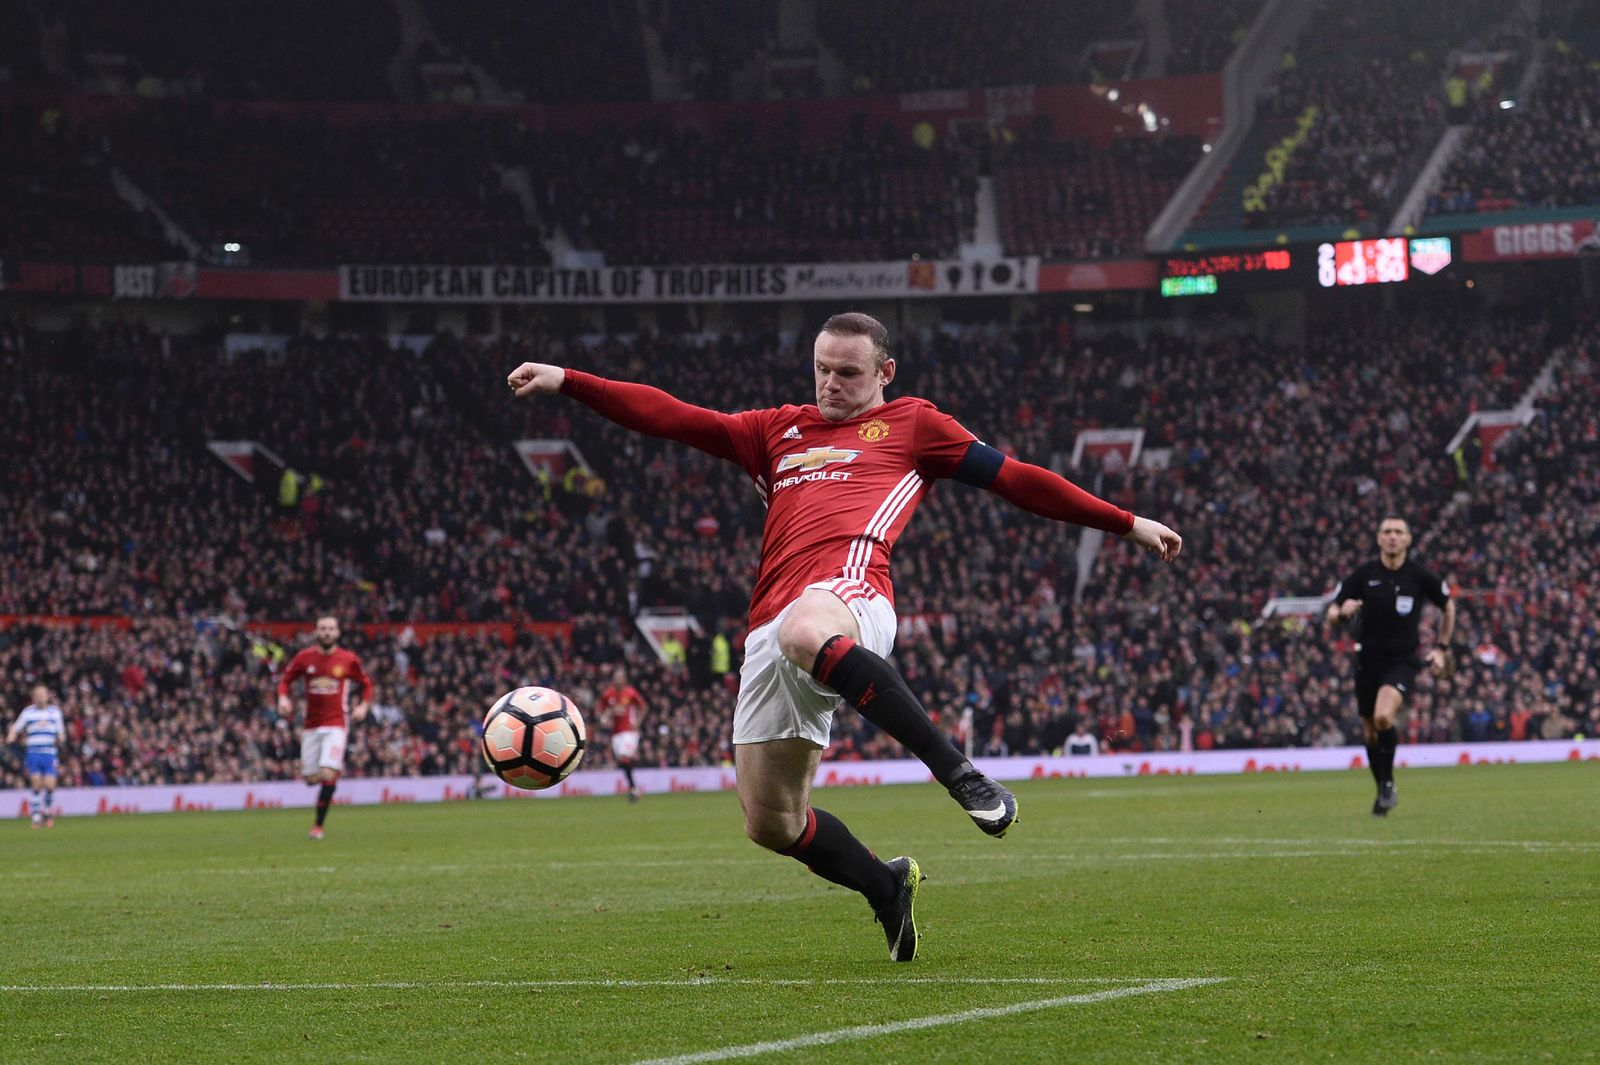 TOPSHOT-FBL-ENG-FACUP-MAN UTD-READING